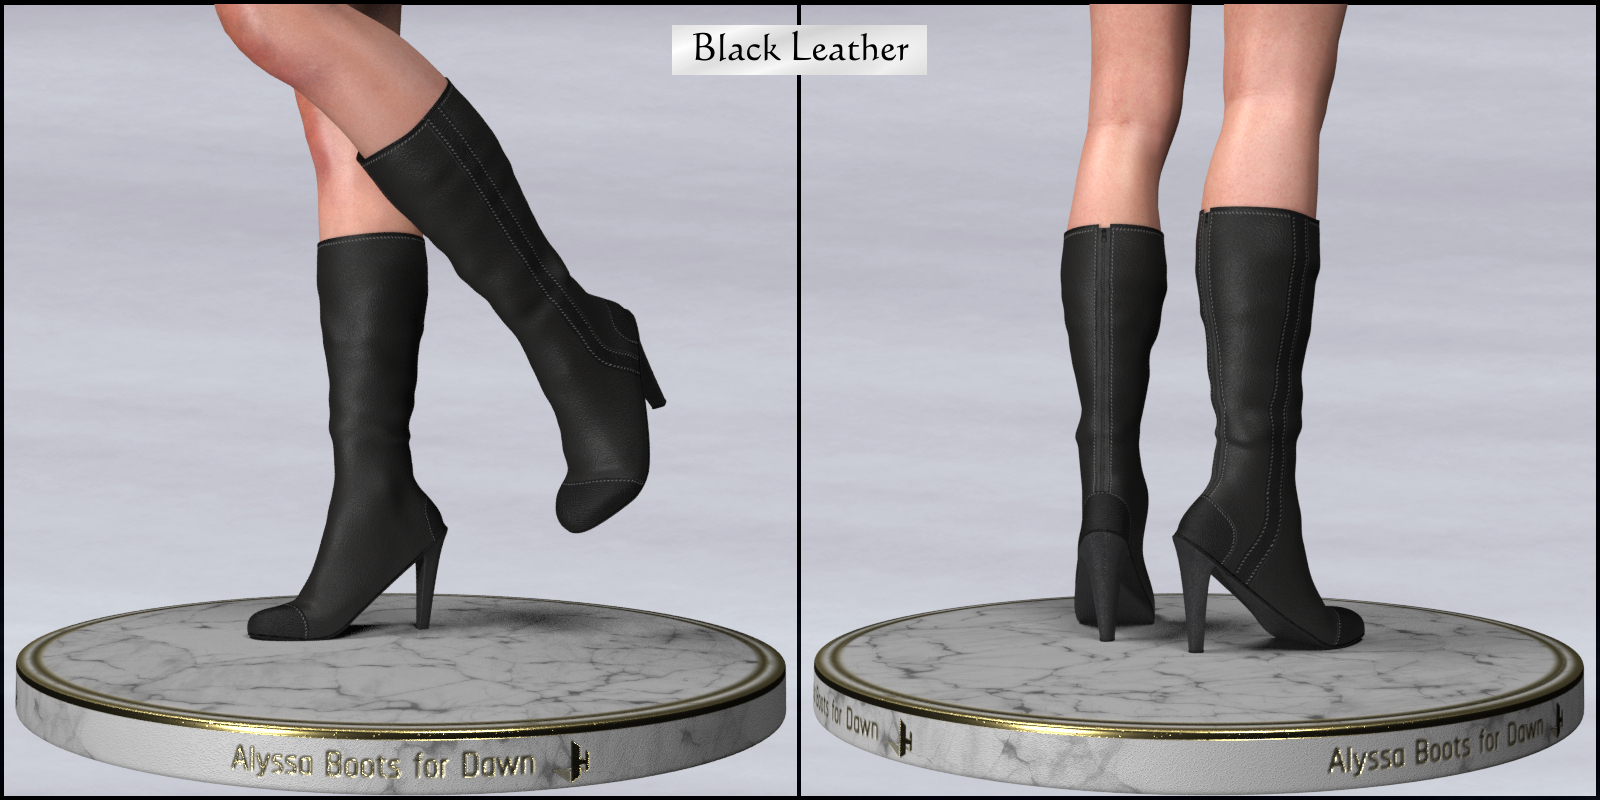 01 Black Leather.jpg